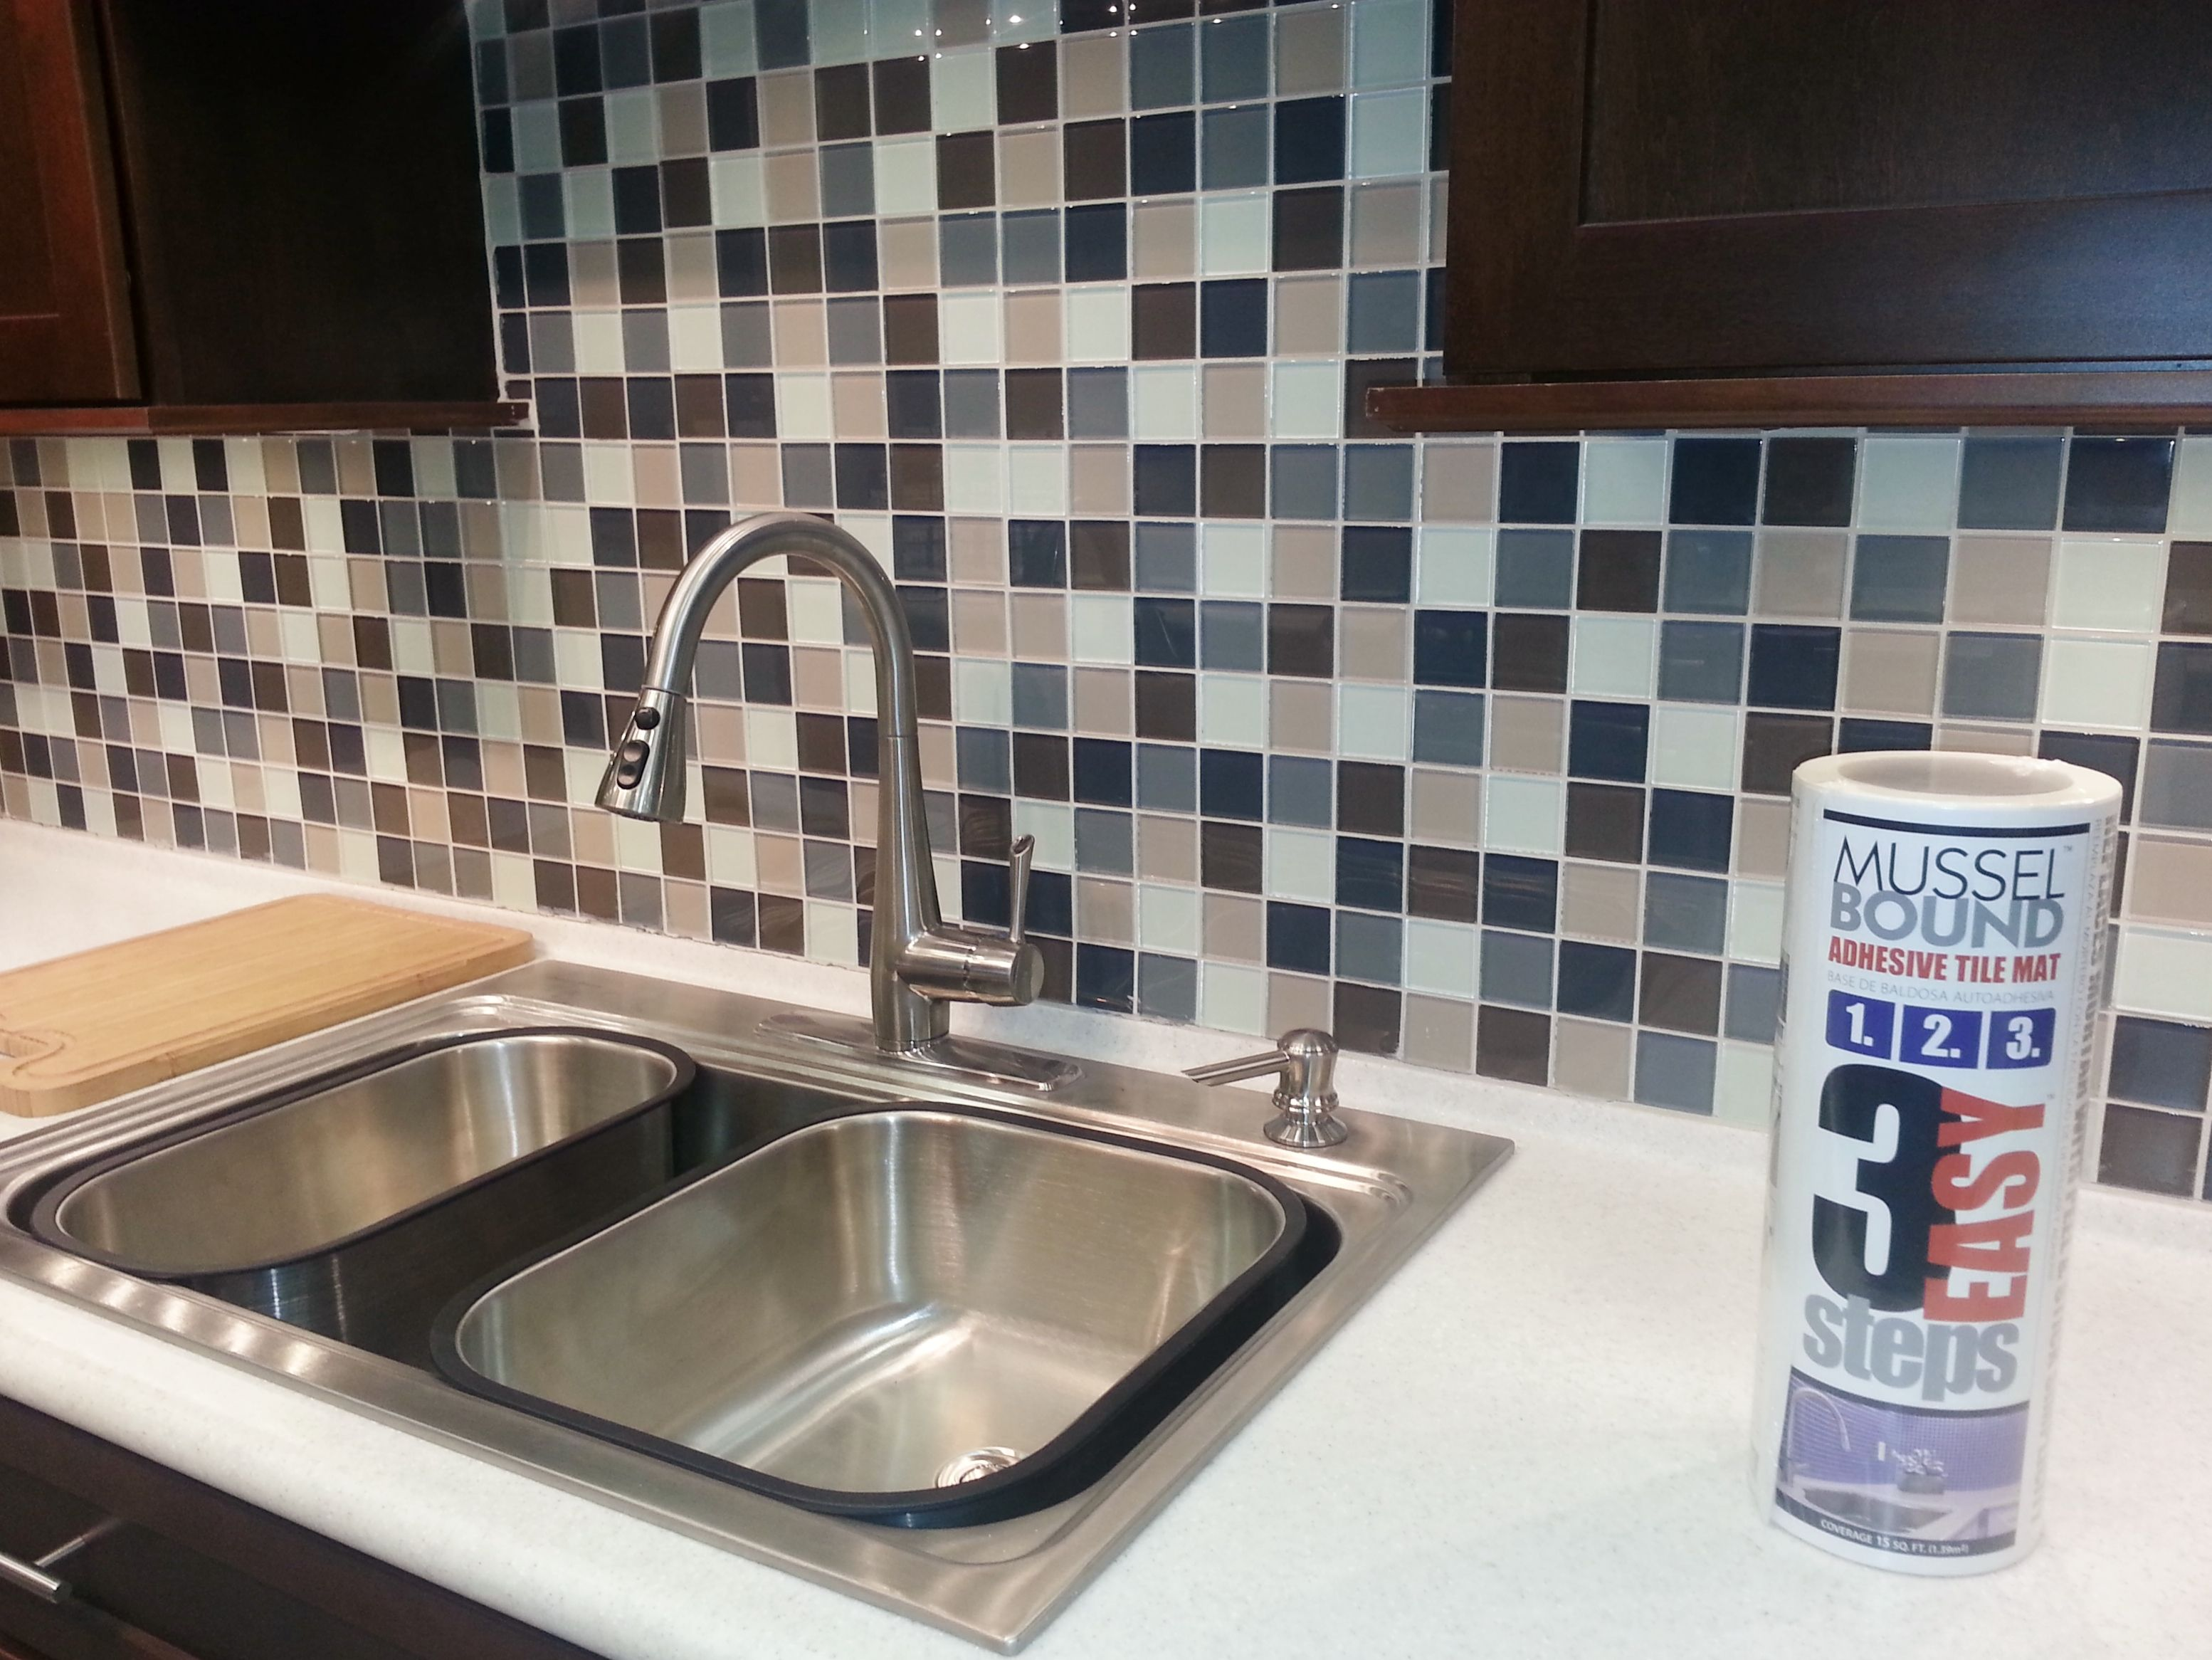 Glass Mosaic Sheets Install Very Quickly And Are Easy To Cut Around